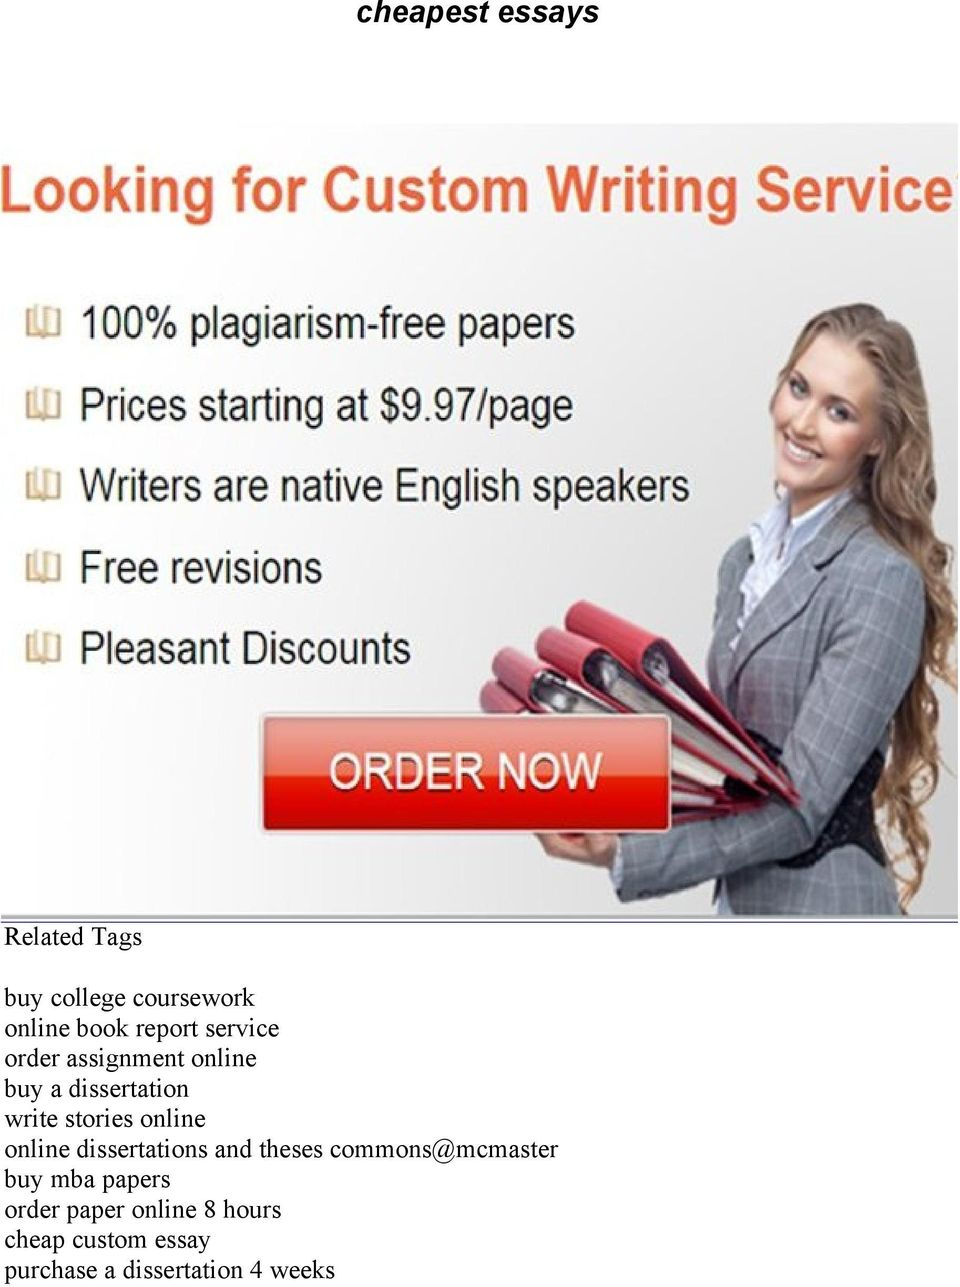 Cheapest Essays Related Tags  Pdf Online Online Dissertations And Theses Commonsmcmaster Buy Mba Papers